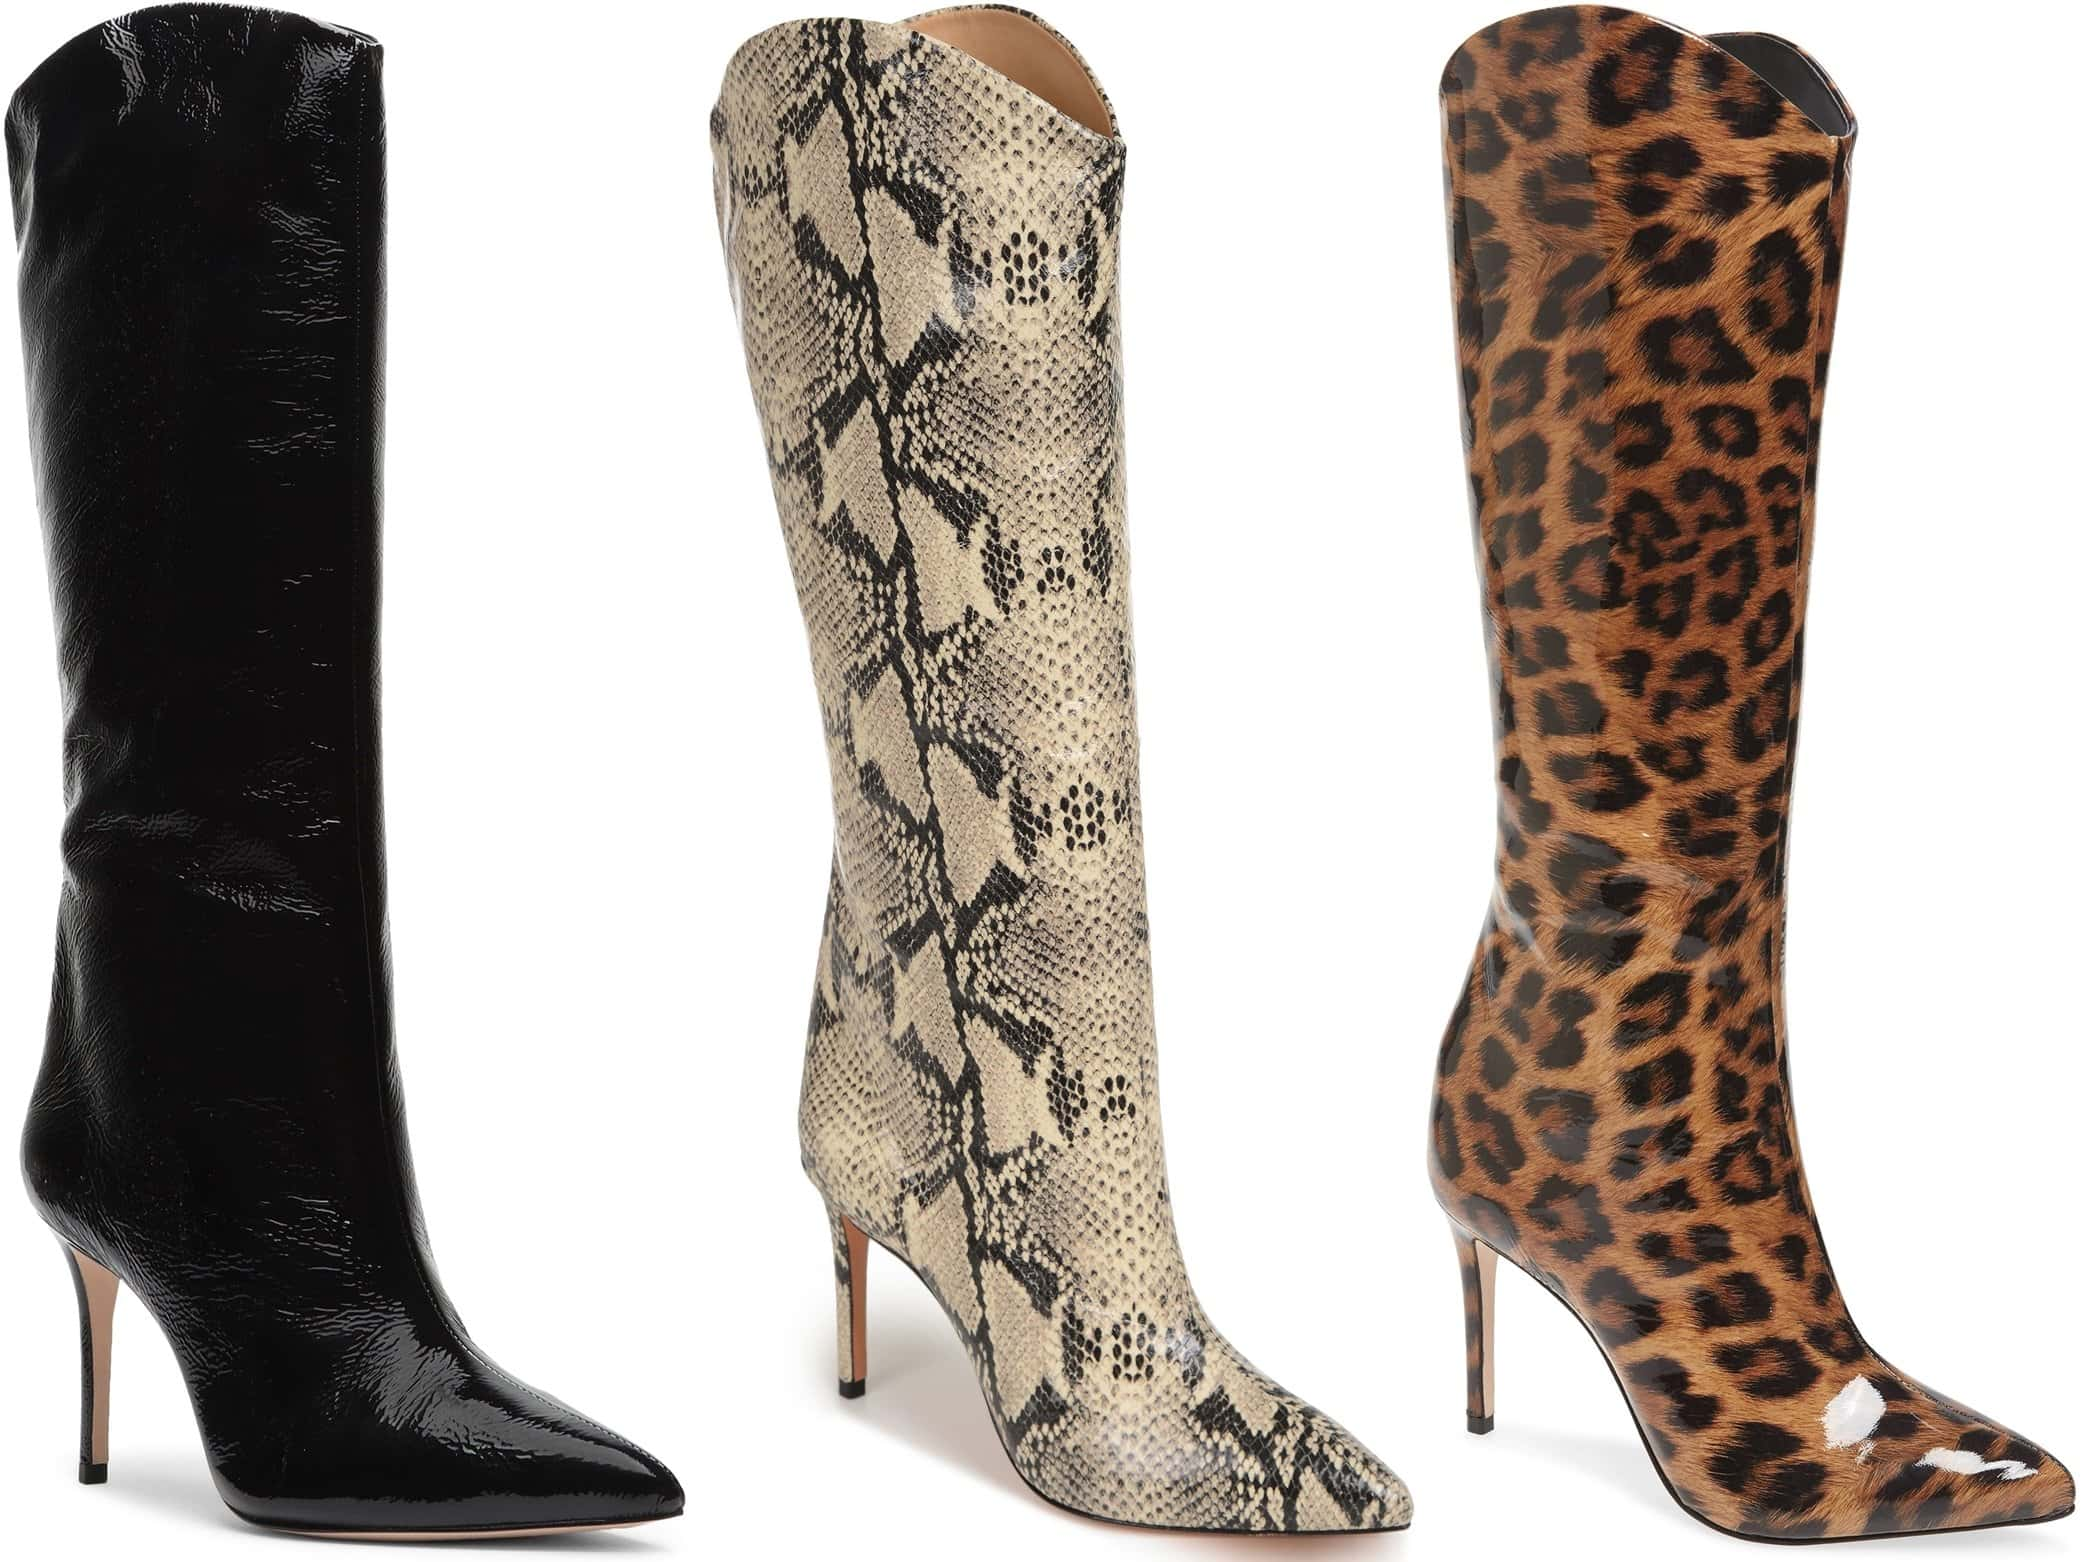 This high-heeled boot features a stiletto heel and pointed toe